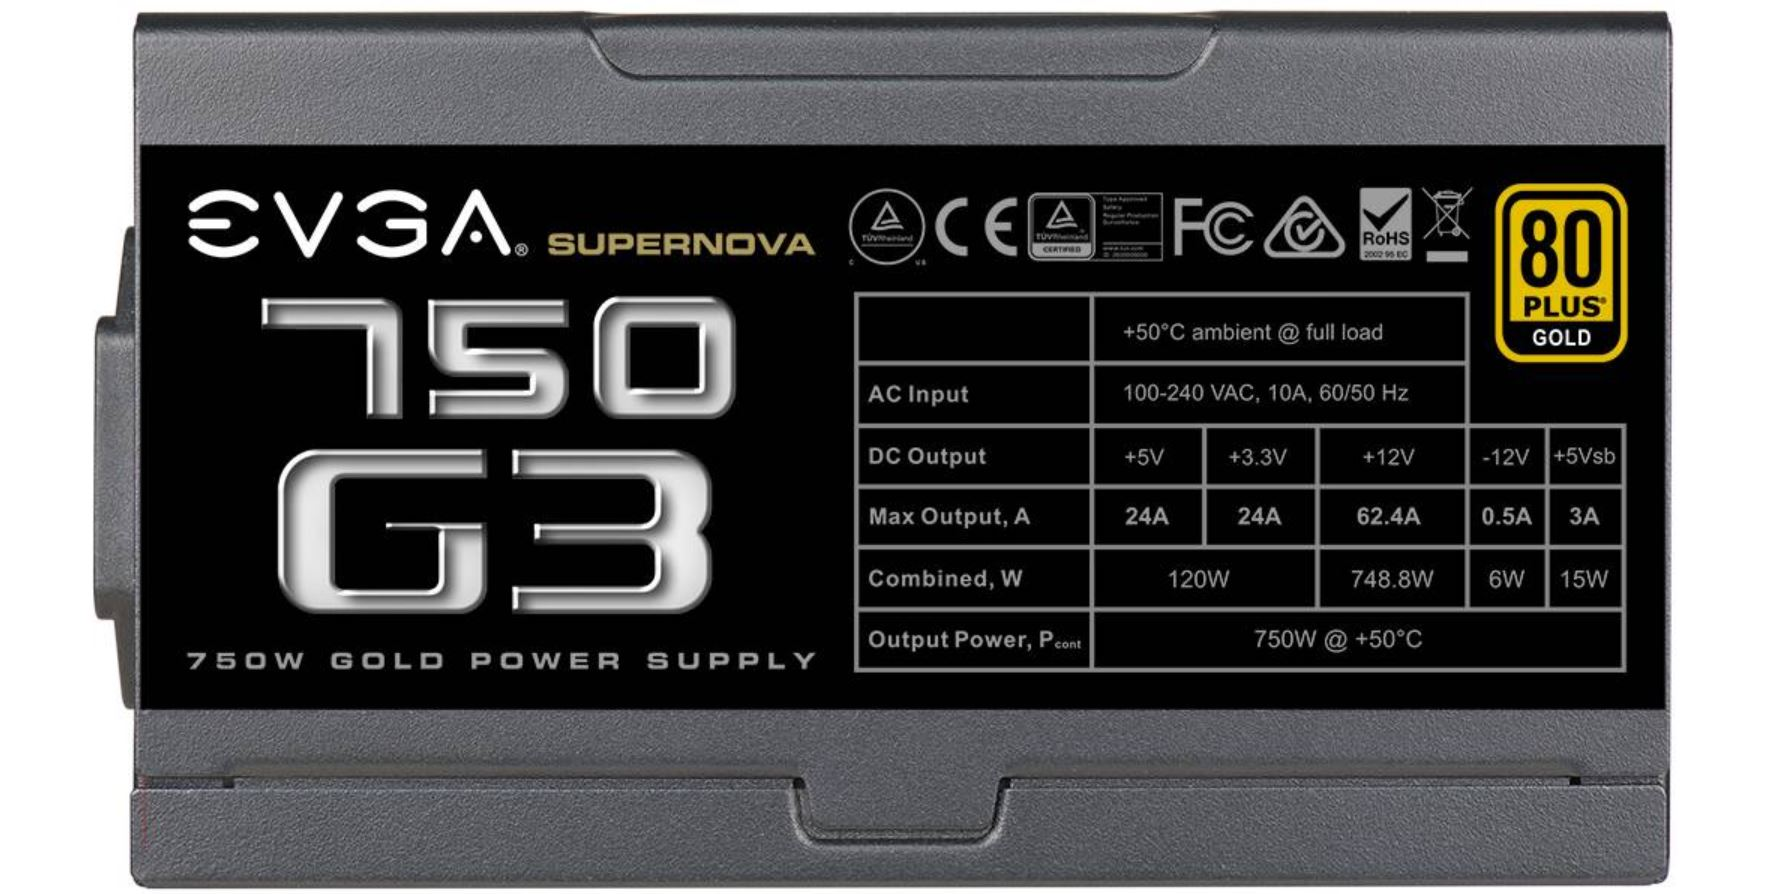 Shacknews Mean On Power Supply Can39t Read Any Voltage Using A Dvm The Plug You Can Find Affordable Supplies In Each Of Tiers Though May Need To Wait For Sales Score Tier 1 Units At Great Price